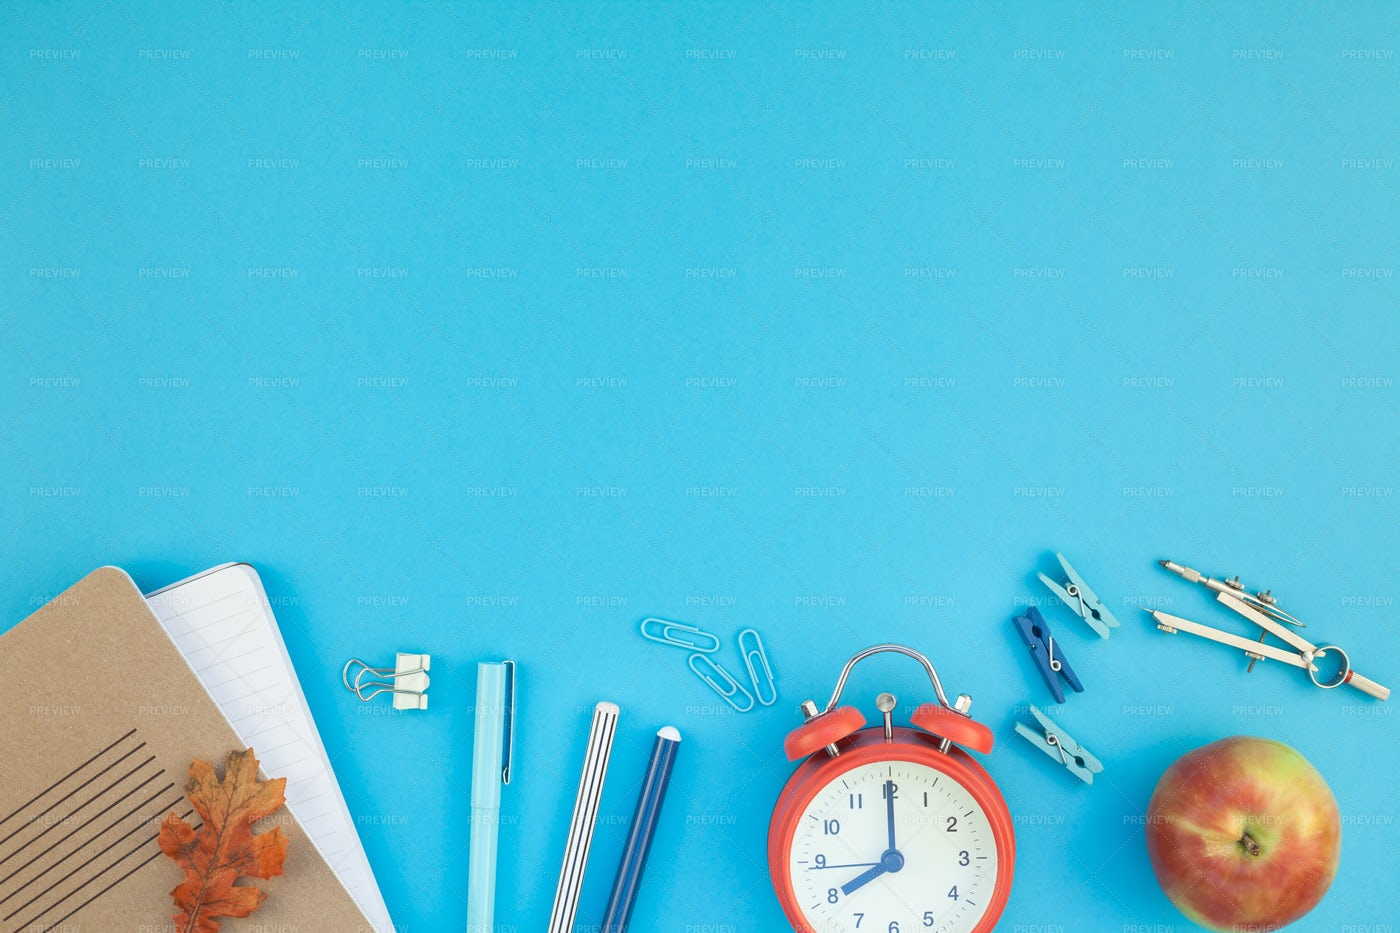 School Items On A Blue Background: Stock Photos